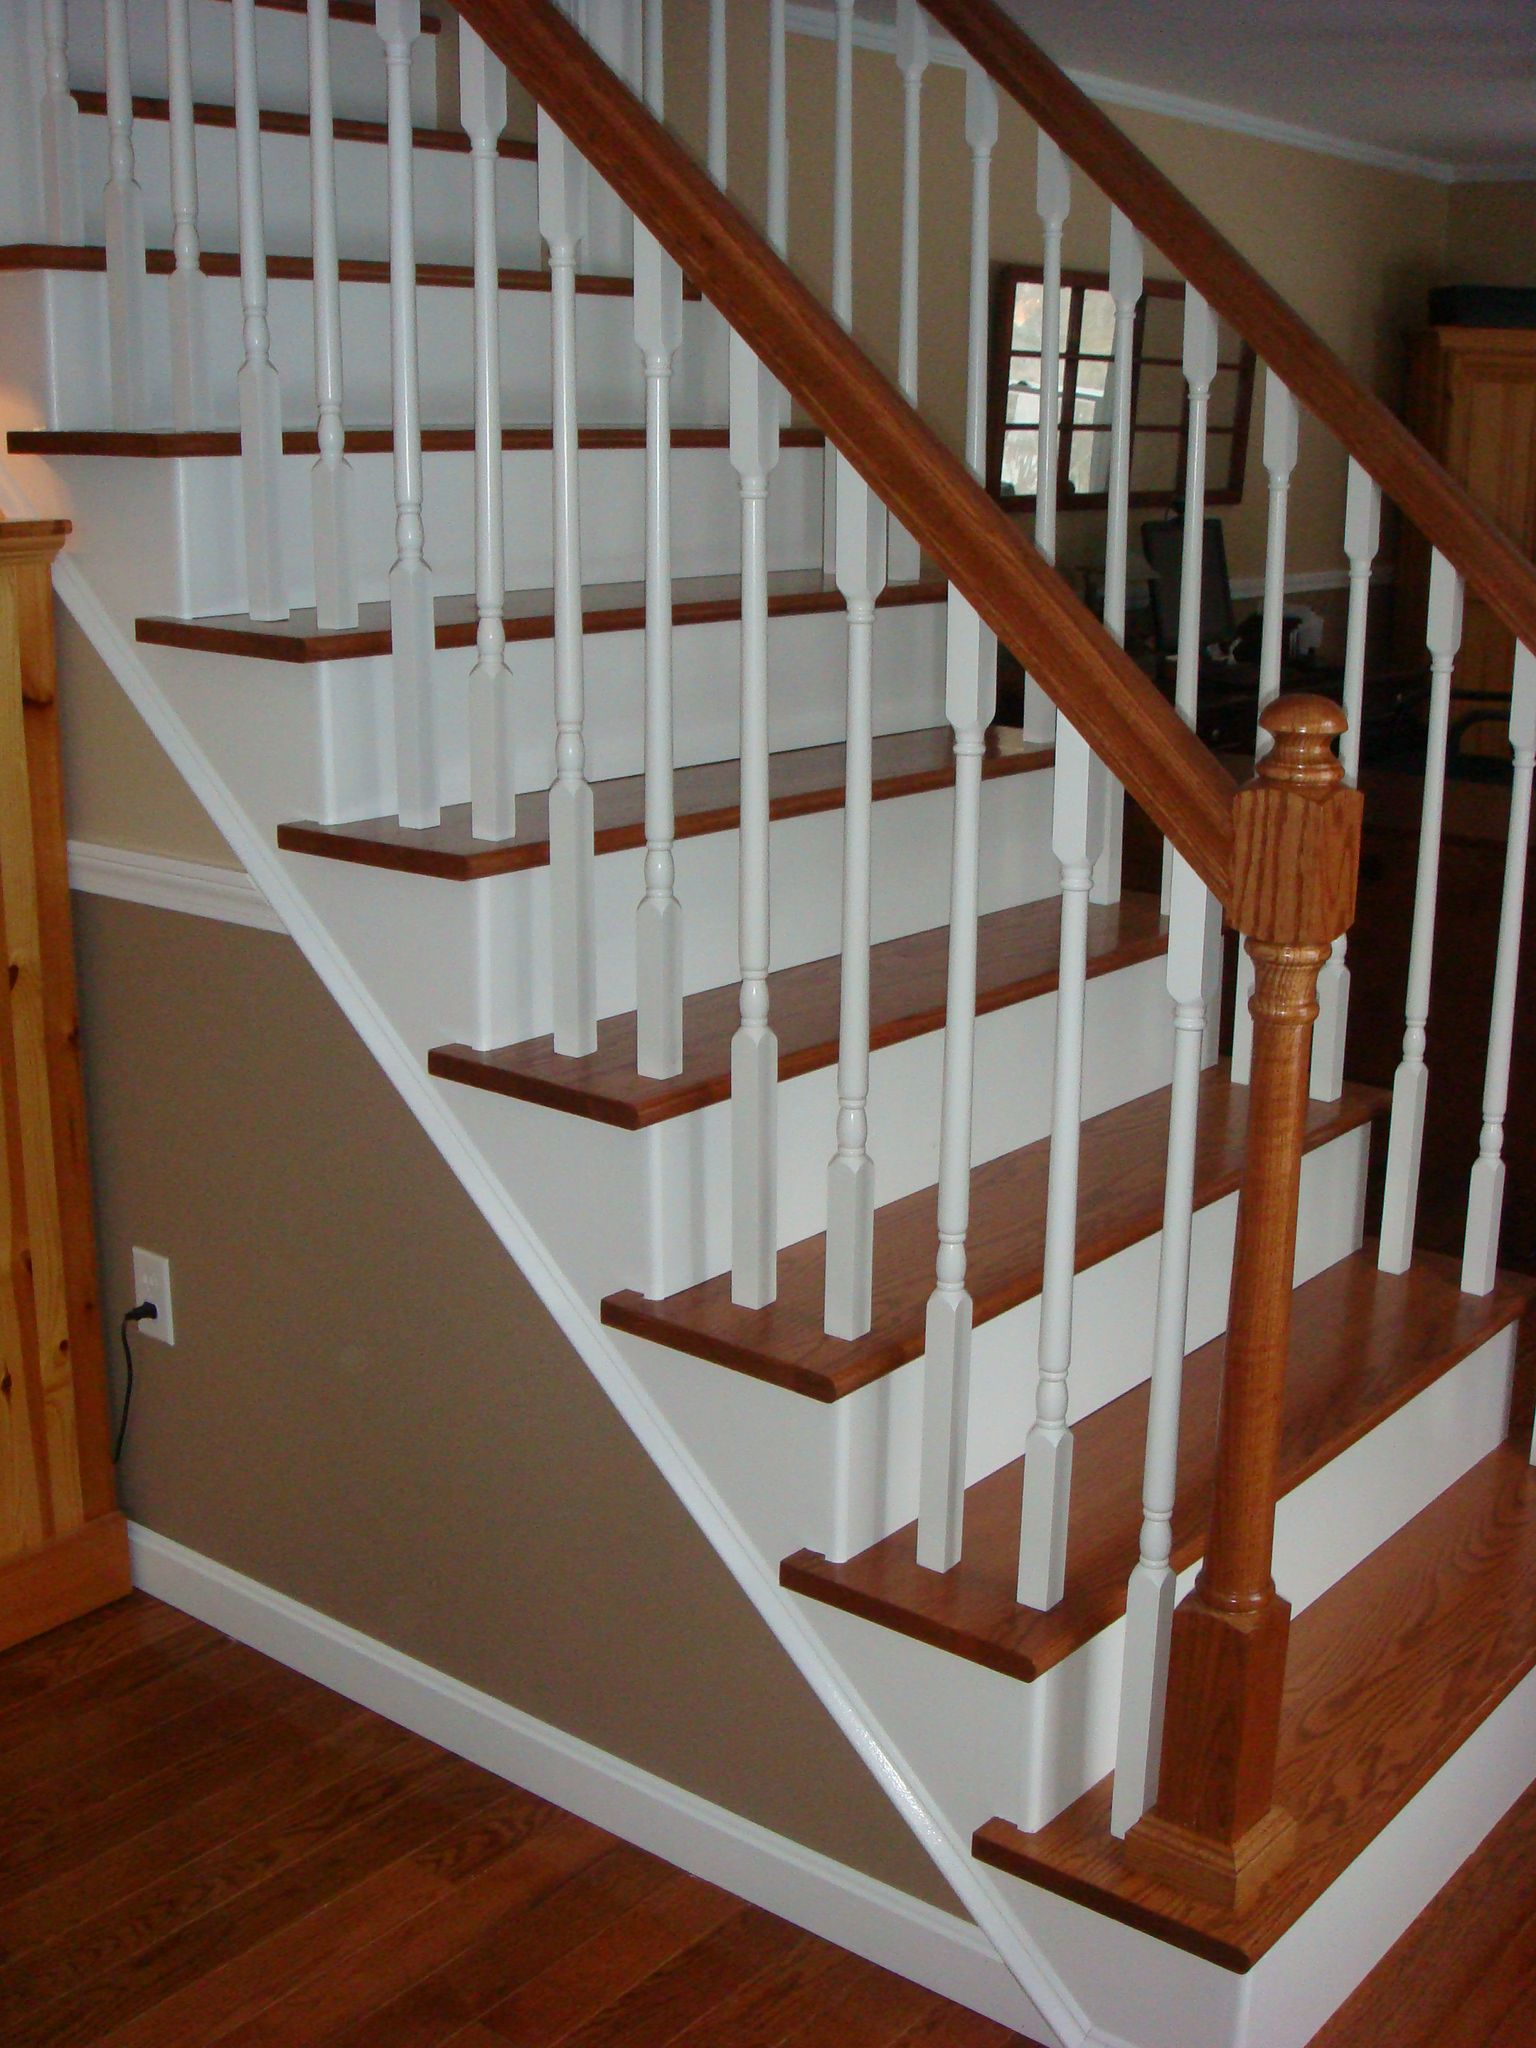 Best From Carpet To Wooden Stair Treads Guest Remodel Redoing Stairs Wooden Stairs And Stair Treads 640 x 480